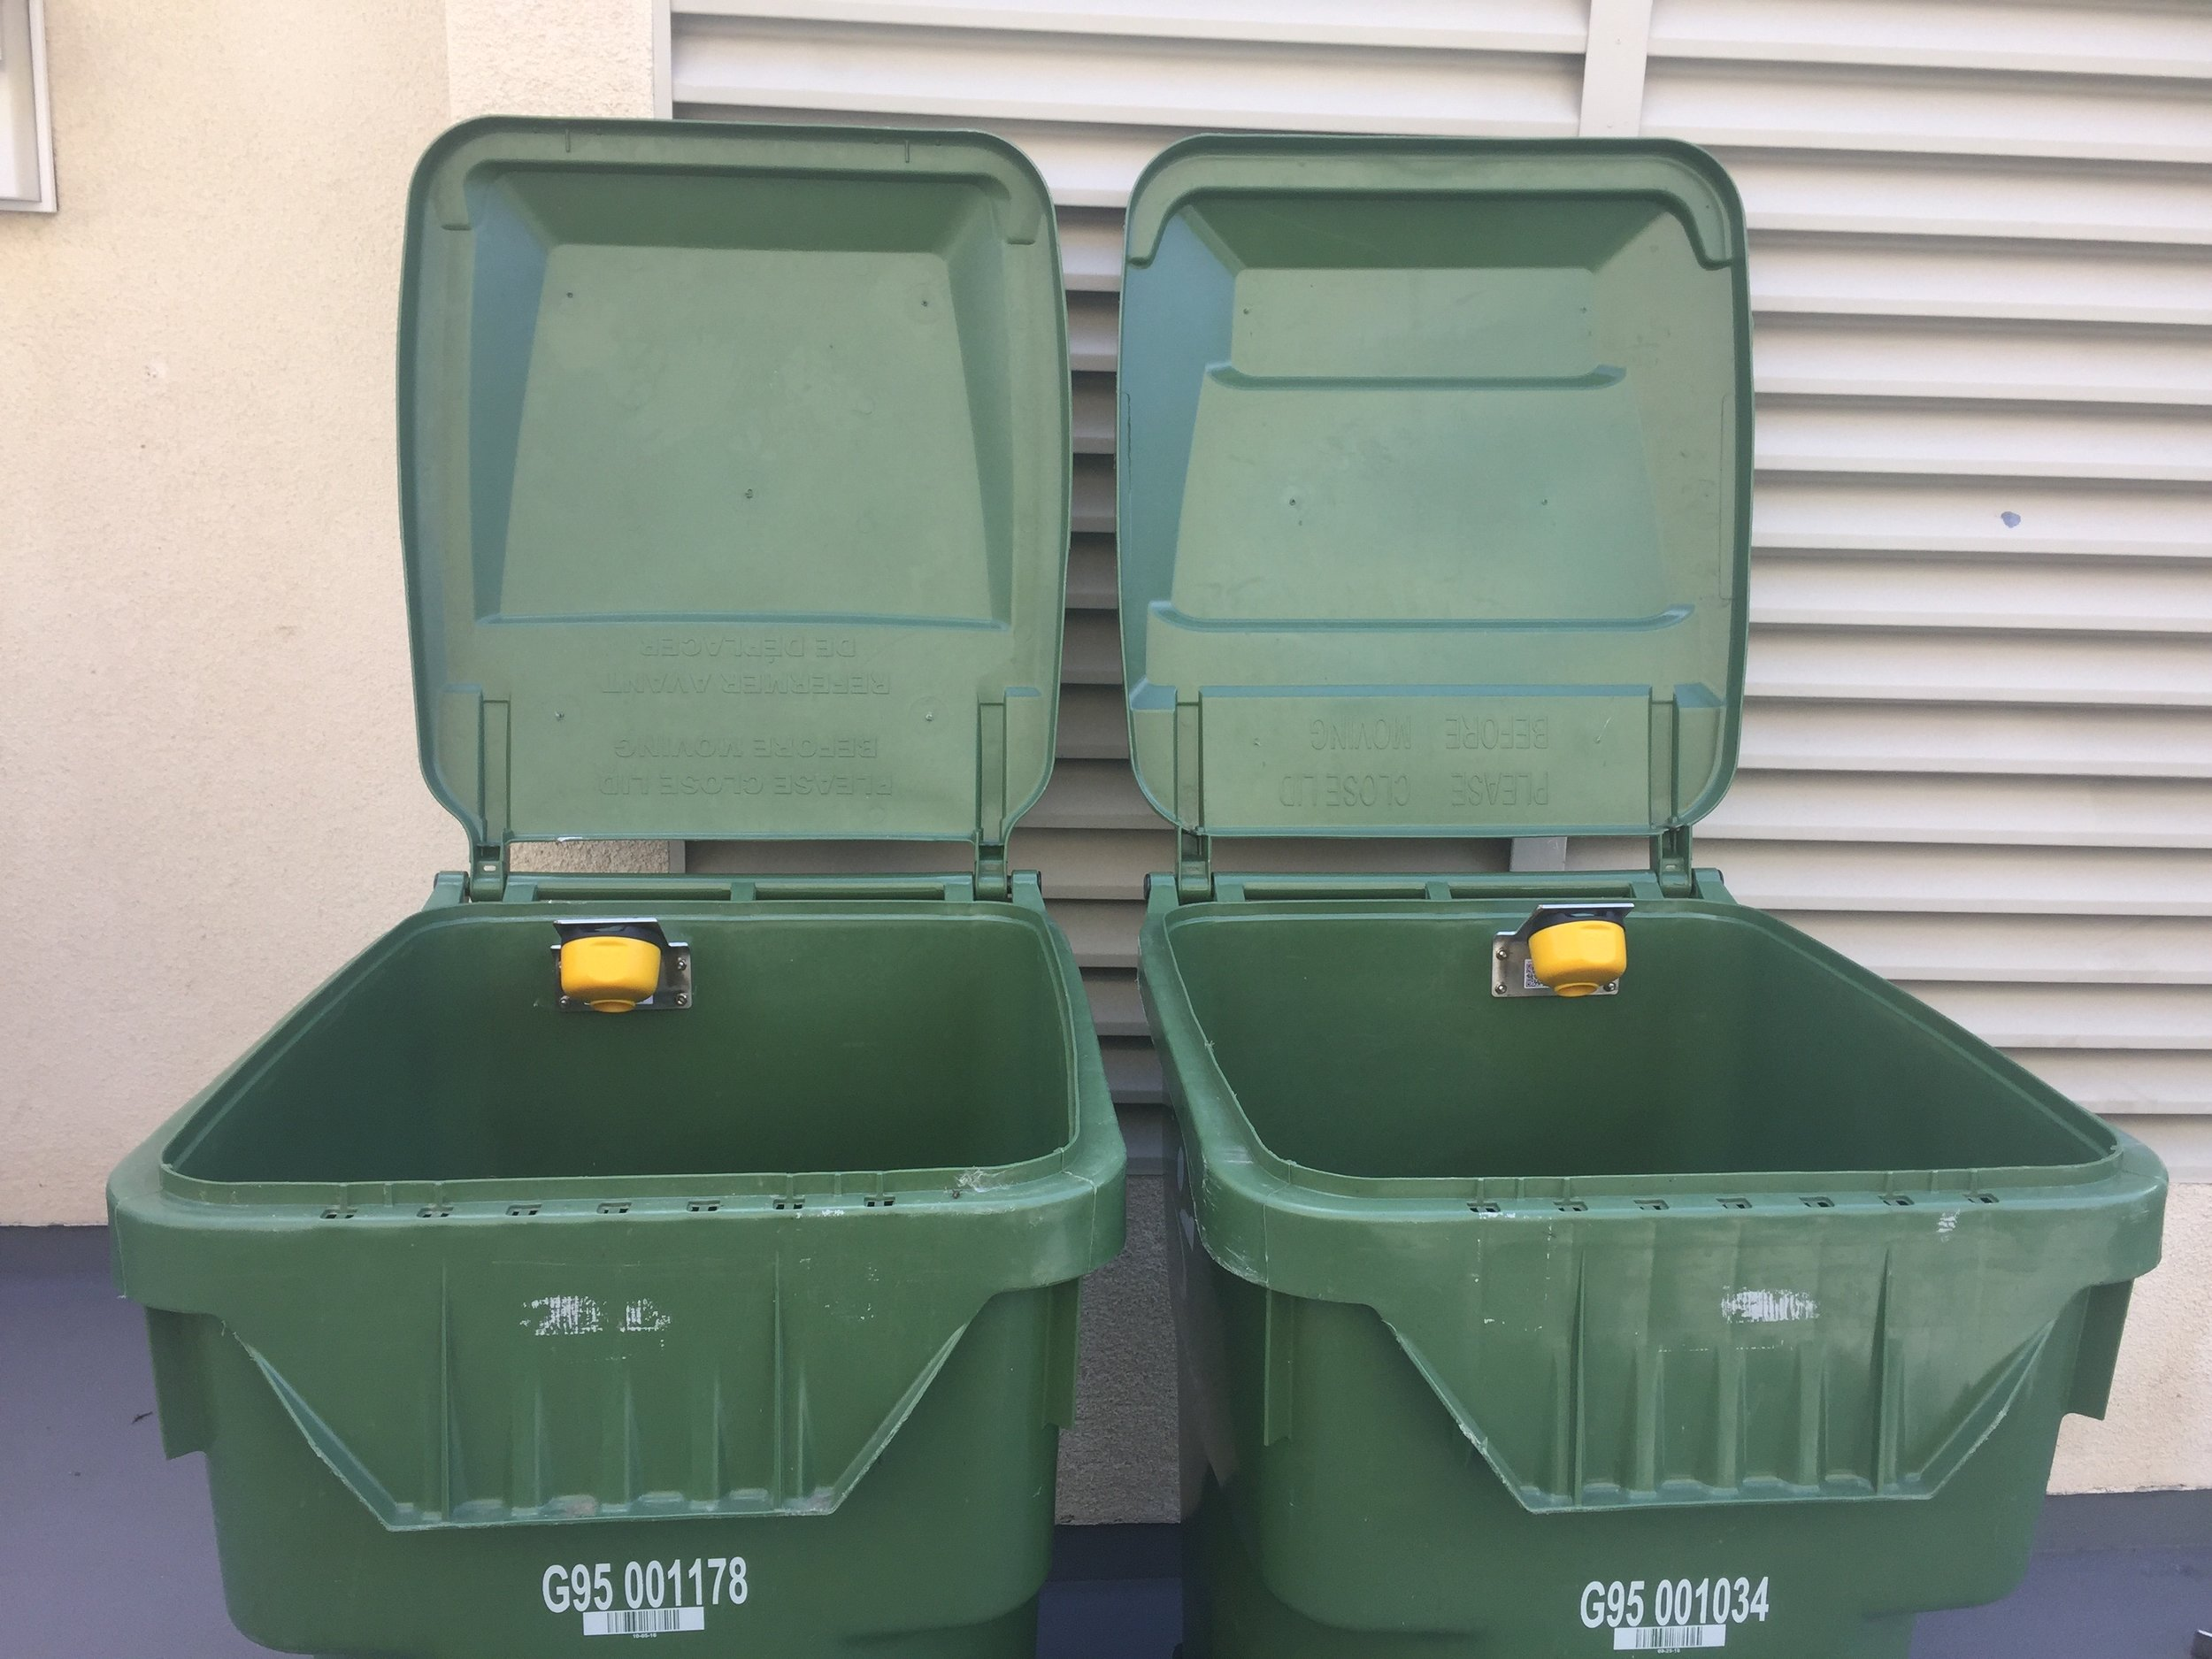 Figure 5: Remote sensors installed on organics carts at Santa Monica apartment building.